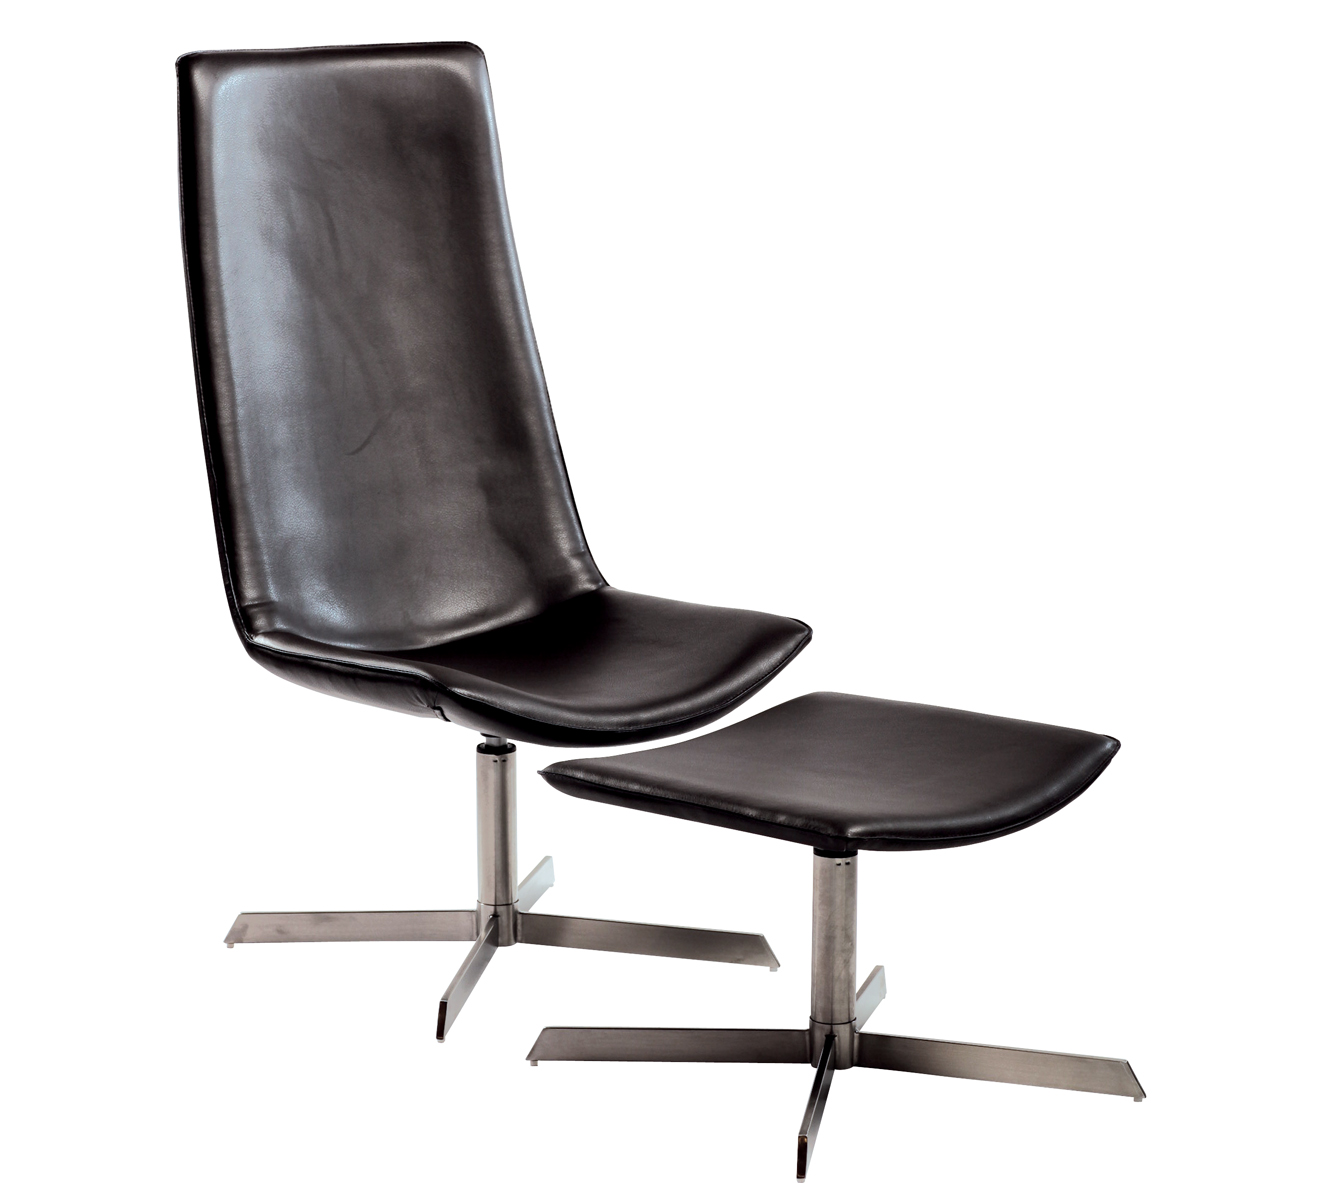 Trento Lounge Sessel Interesting Lounge Chair Relaxstuhl Guenstig Kaufen Bei